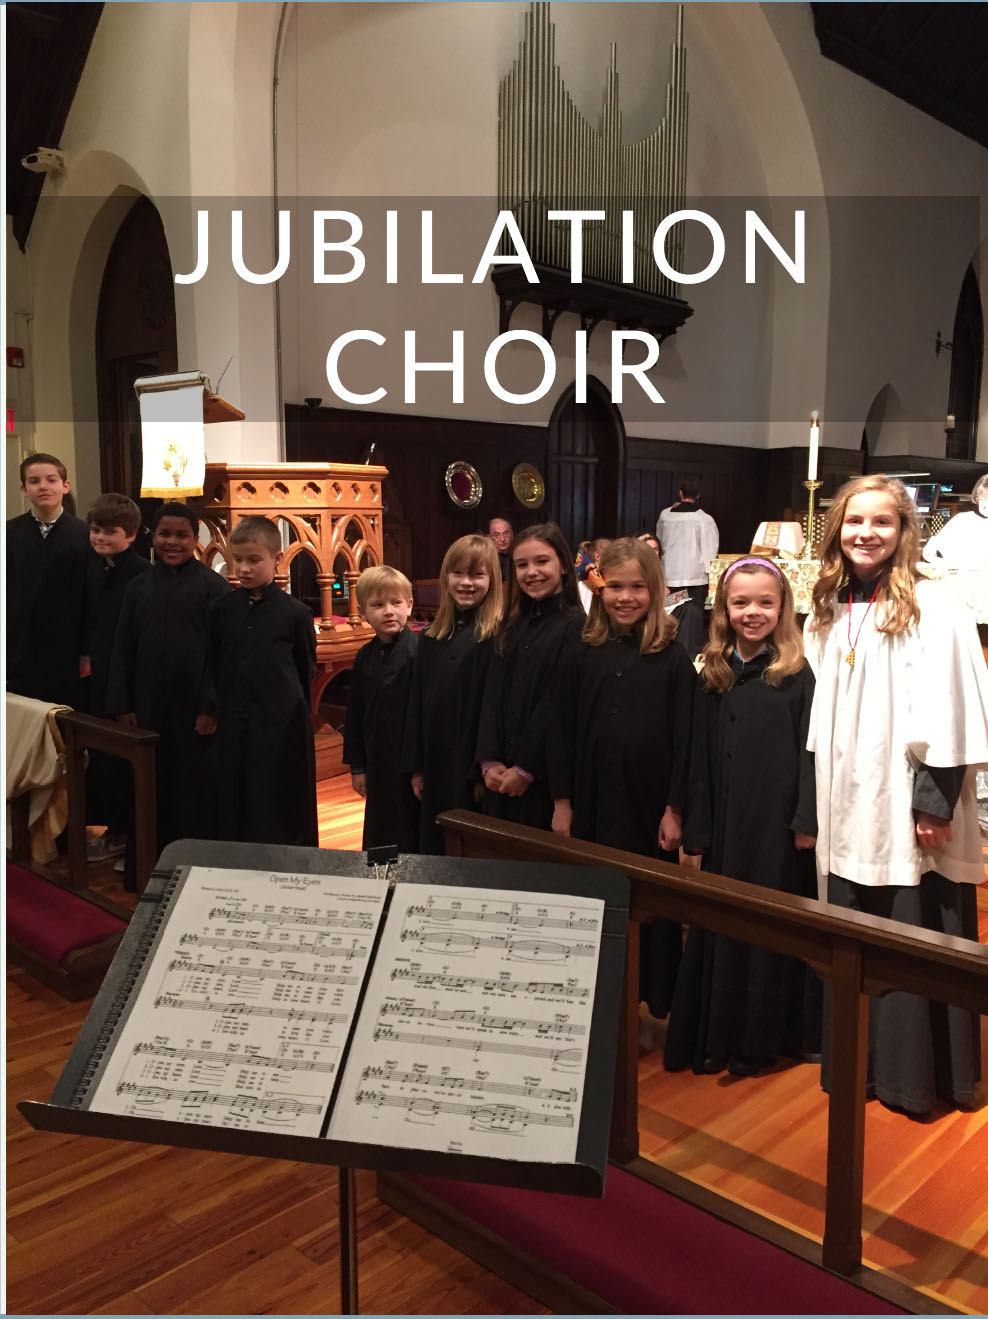 Jubilation Choir